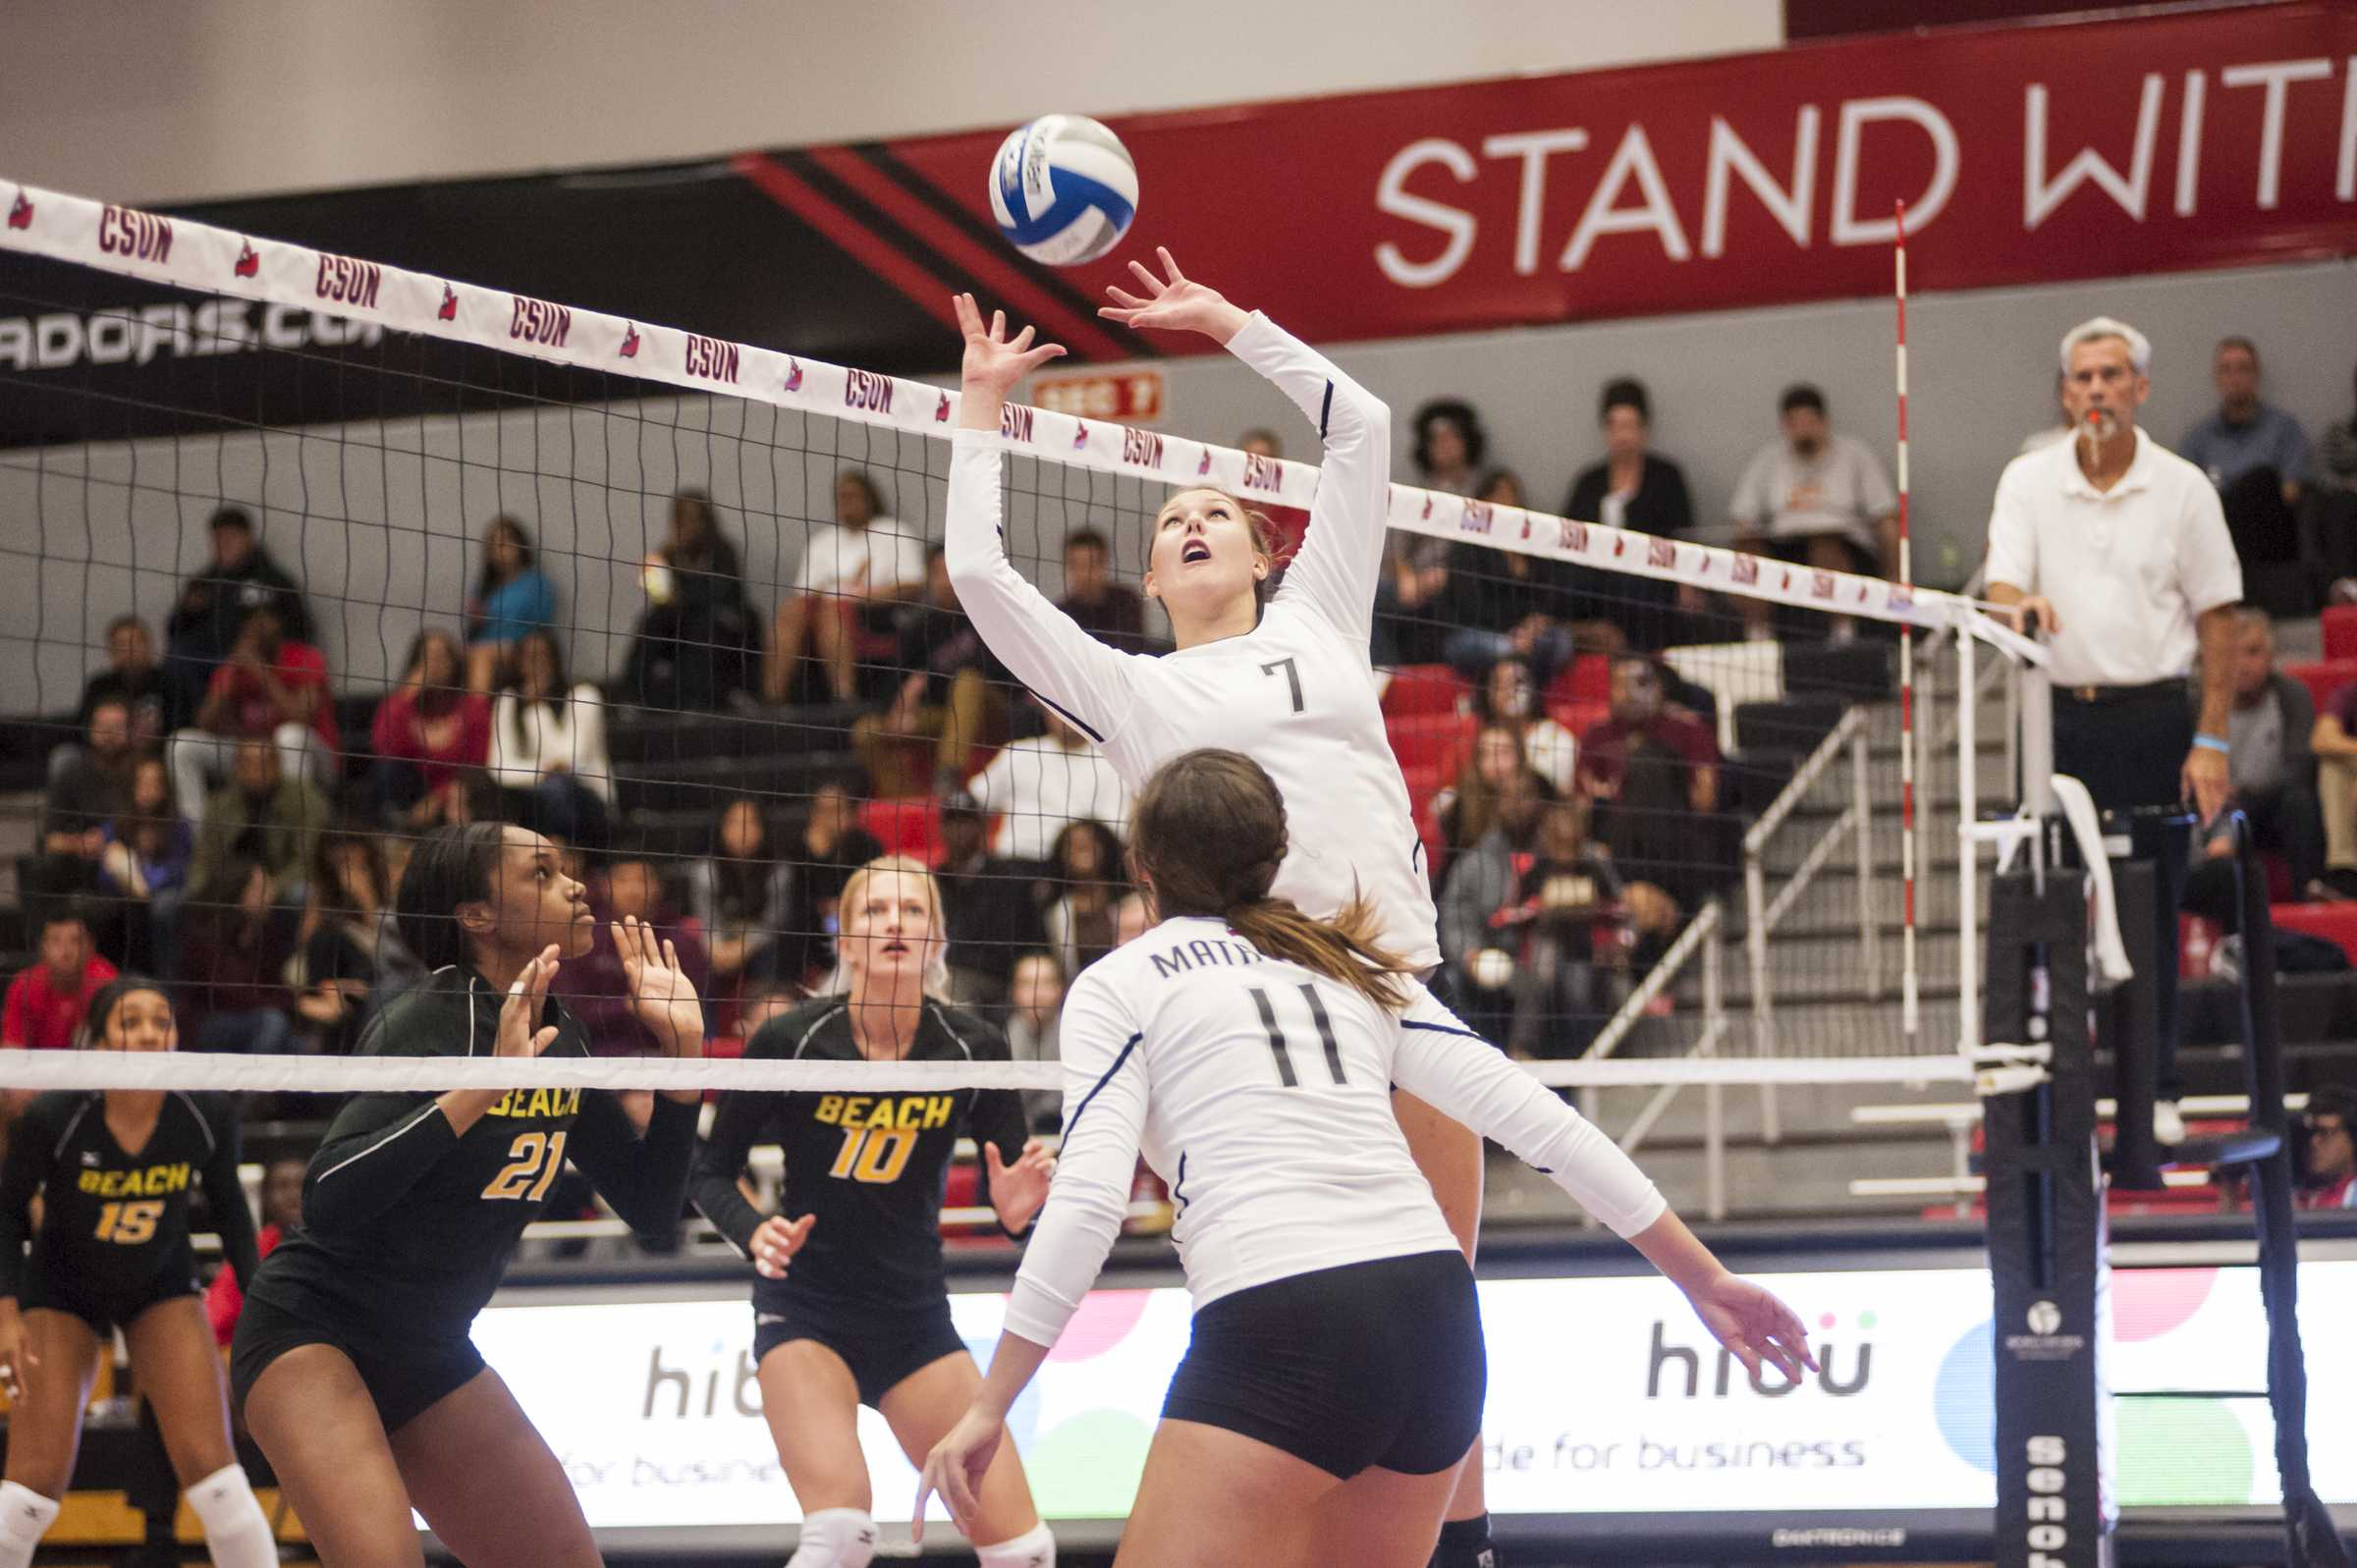 Because the CSUN women's volleyball team used an ineligible player during the 2014 season, it must vacate 18 of its 19 wins